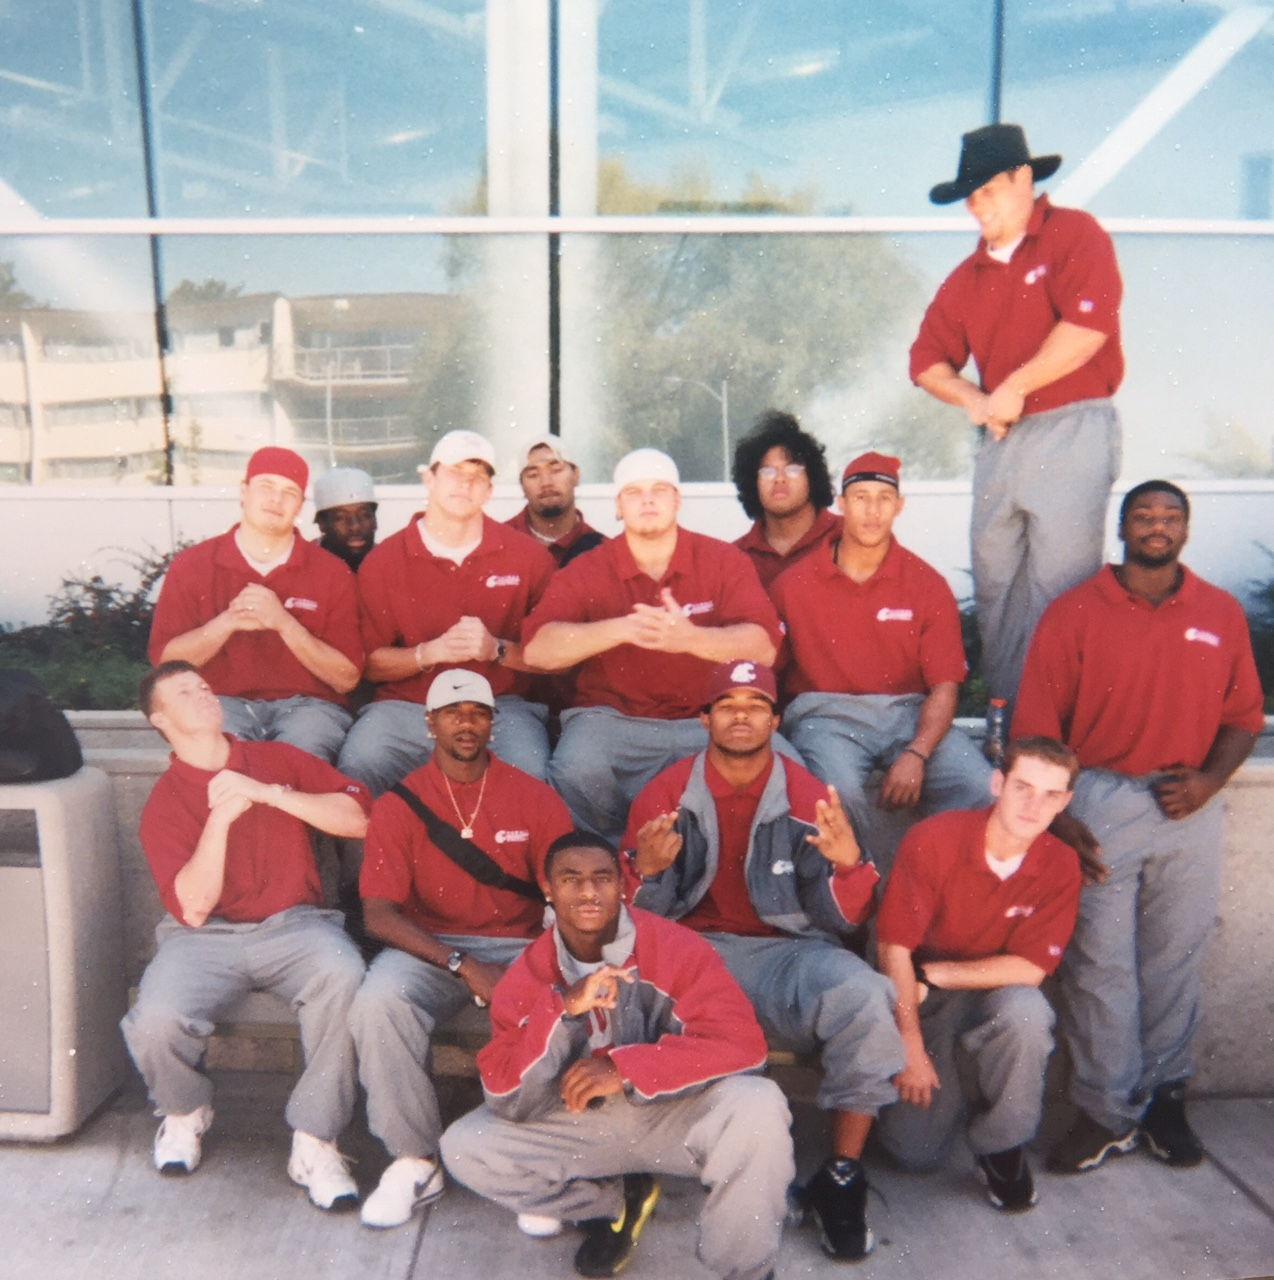 Here we are in front of Bohler. Nice cowboy hat by the way. That's me on the bottom right.